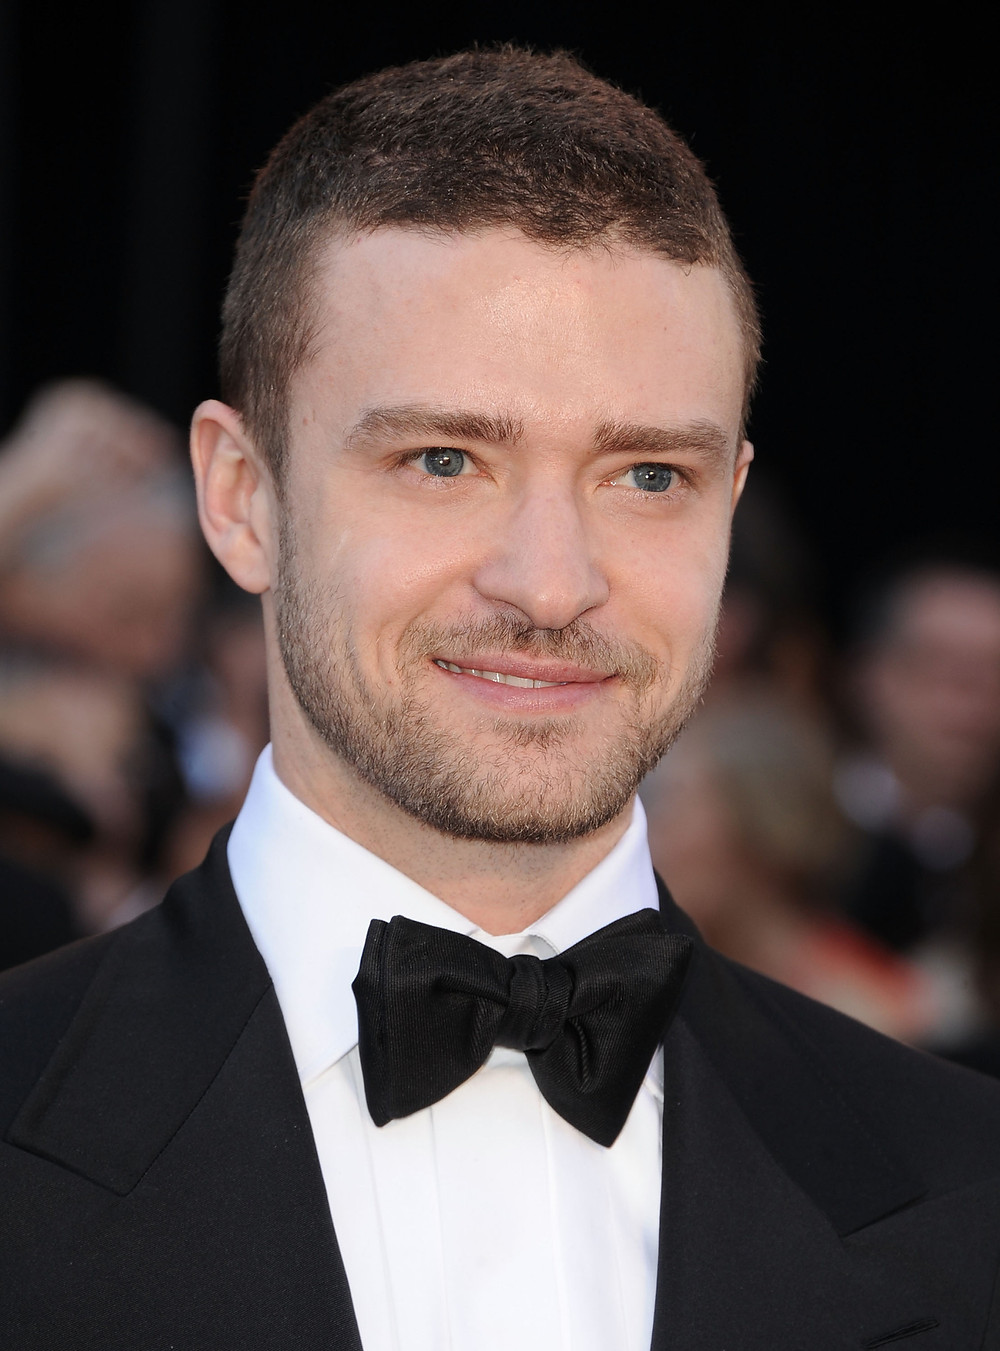 Justin Timberlake - CAN'T STOP  | My mom loved this song. She passed away a month ago